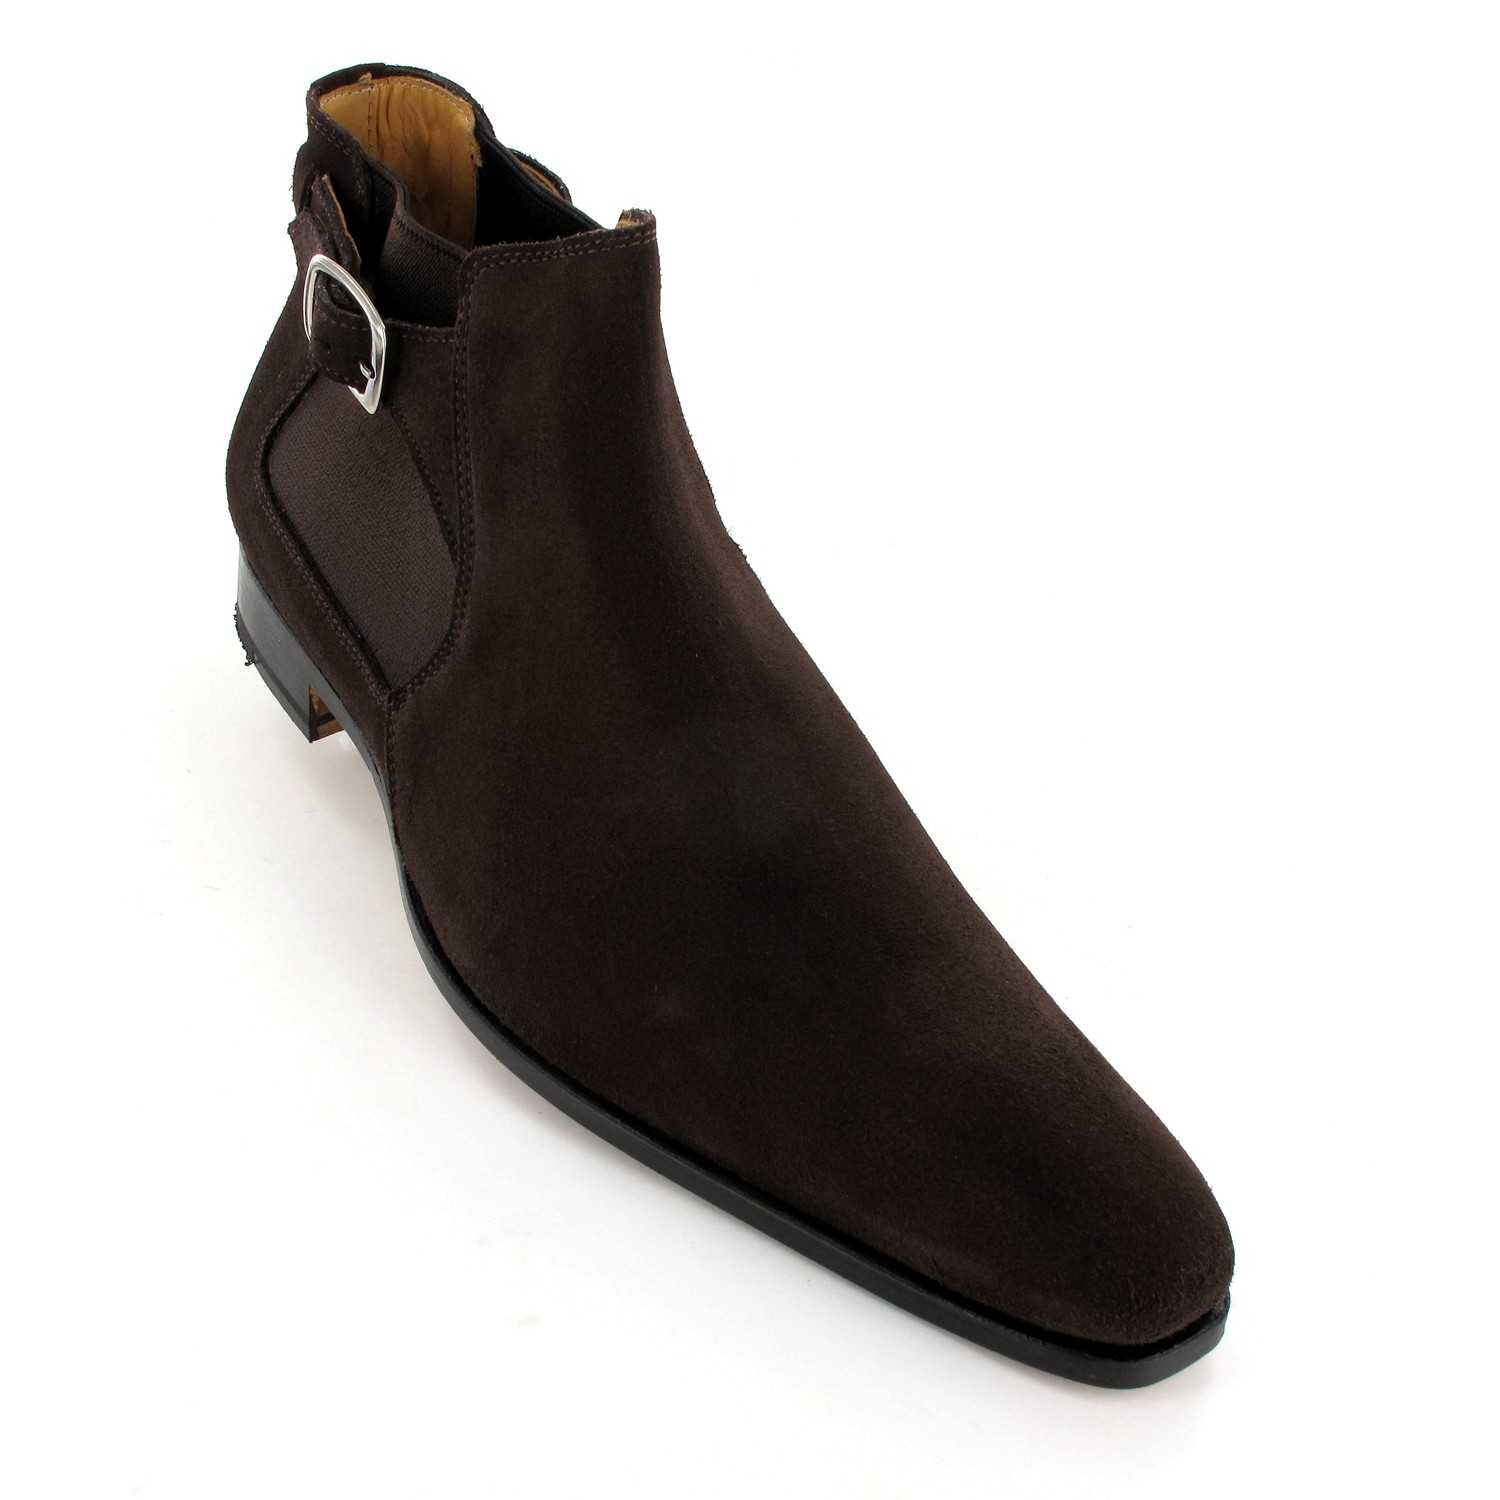 bottines homme: boots hommes - chaussures boots - chaussures homme